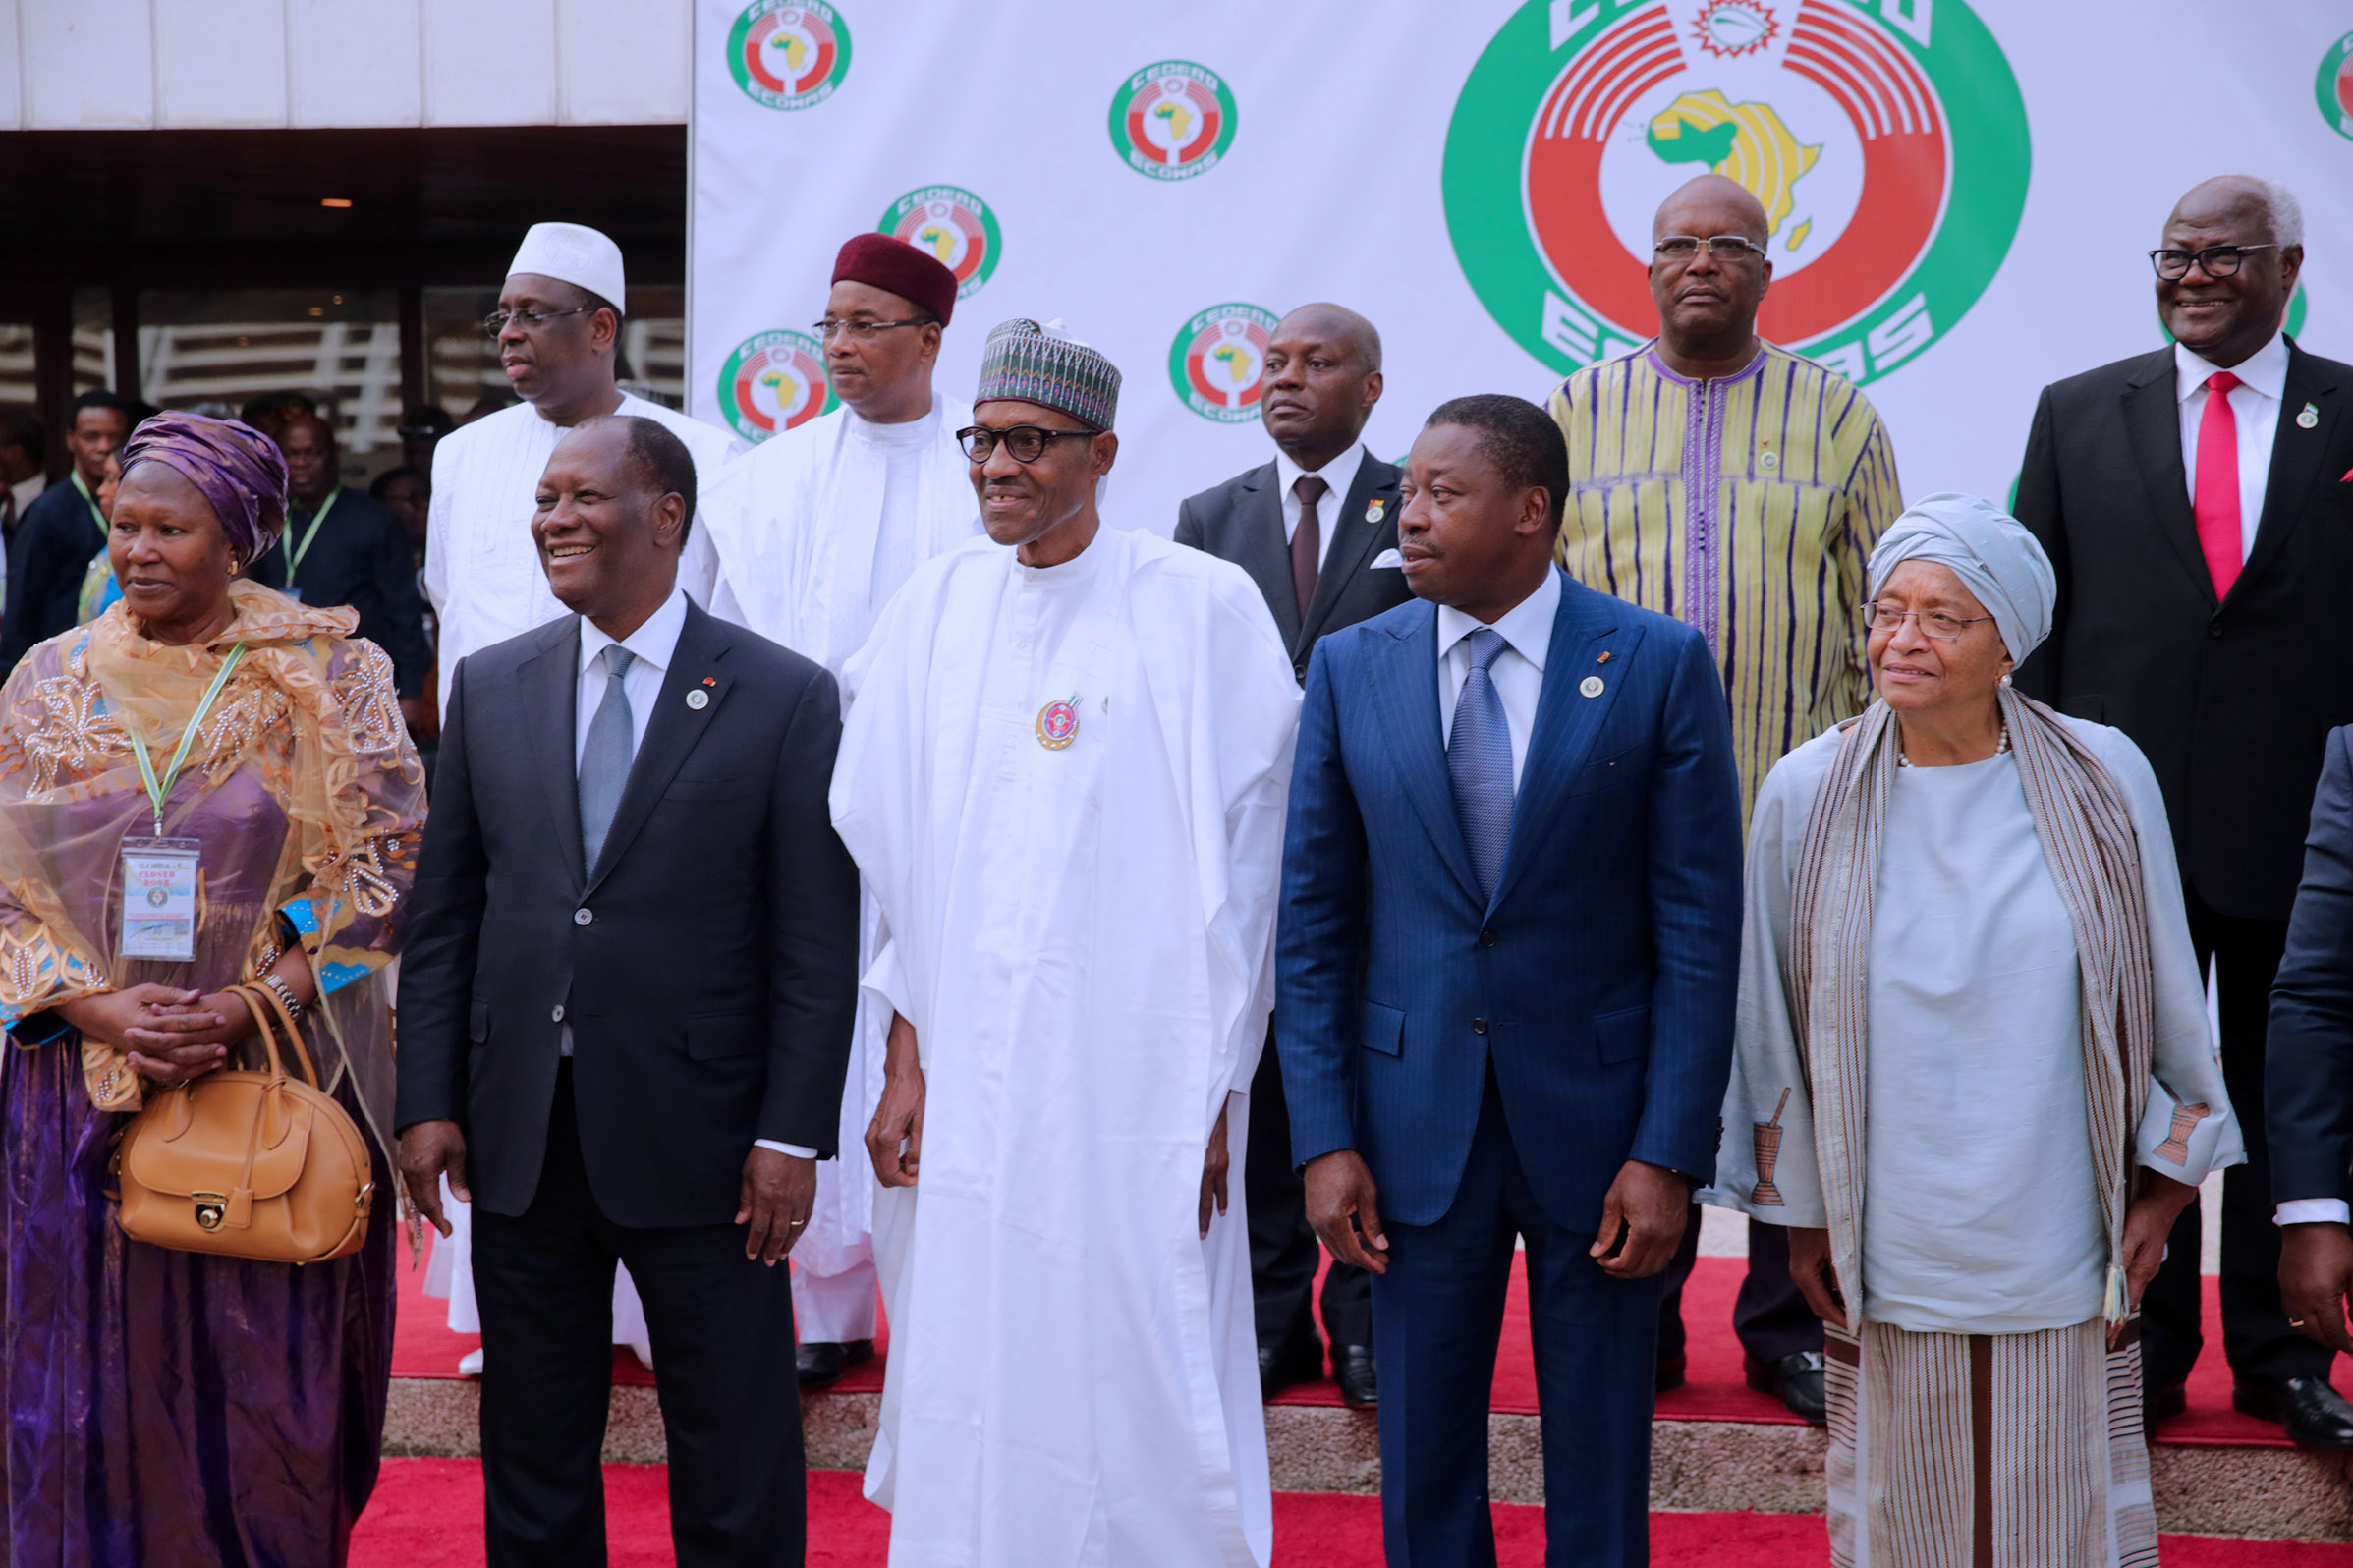 The Day in Pictures: Buhari at the 52nd ECOWAS Summit